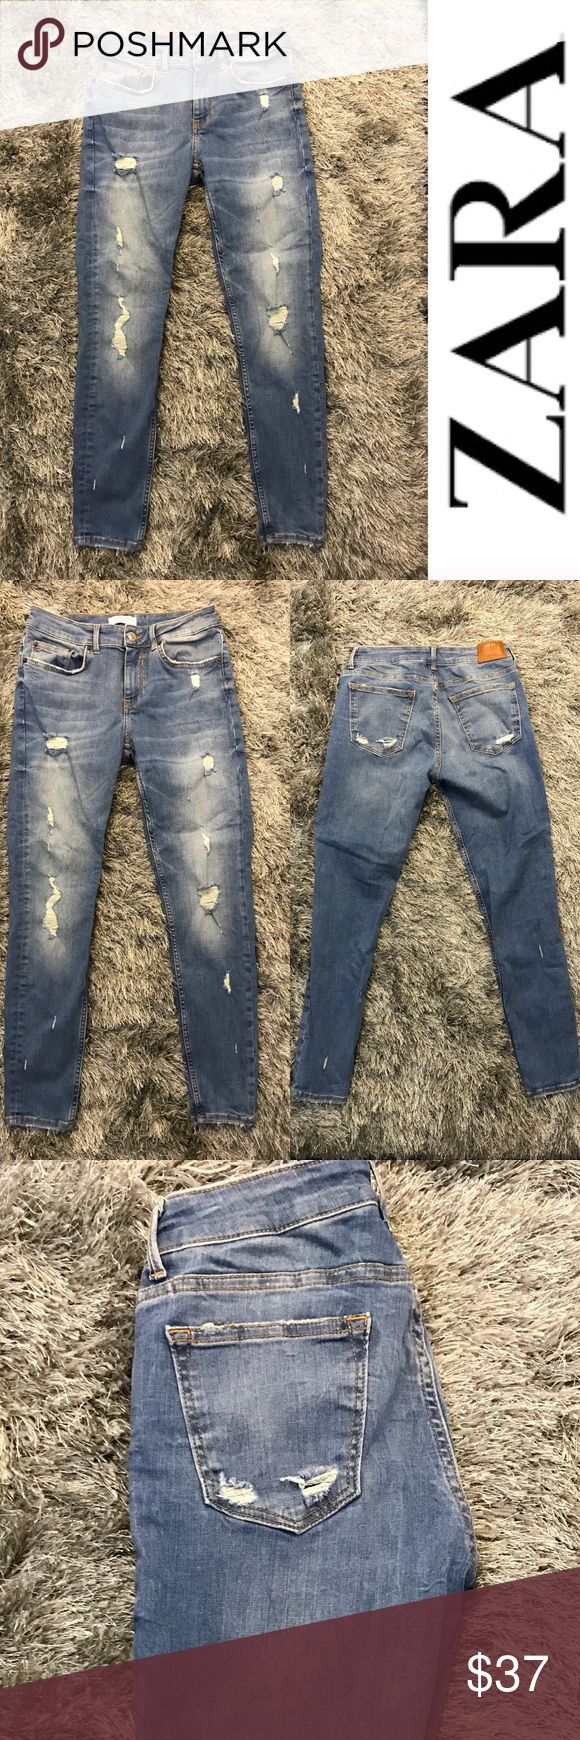 """Zara distressed skinny jeans medium wash Medium wash distressed Zara  skinny jeans  Perfect condition  New without tags  All sizes are approx  may not be exact ( I'm only human) Inseam : 27"""" Outseam : 36 1/2"""" Leg opening : 10"""" Front rise: 9"""" Back rise: 12"""" Hip:35"""" Zara Jeans Skinny"""